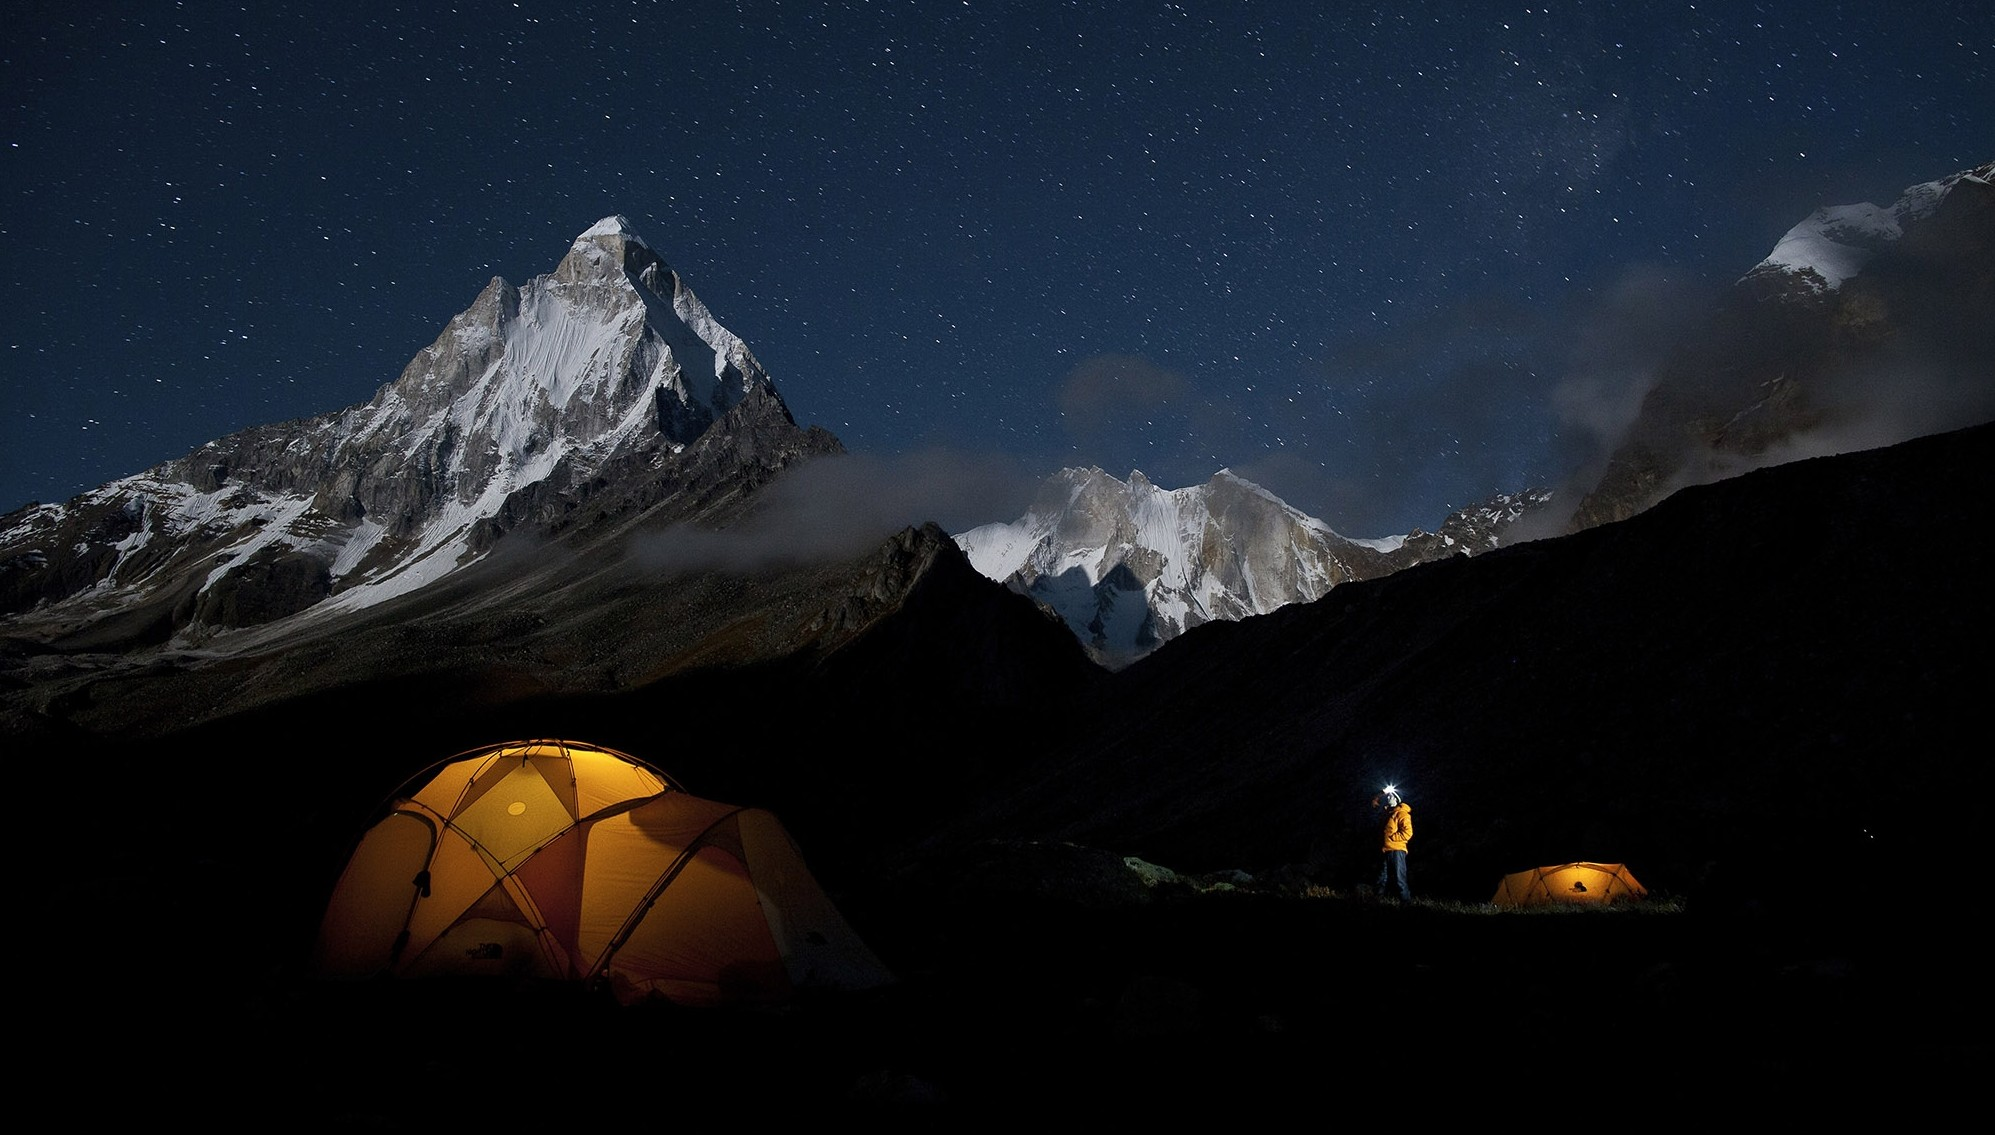 The documentary 'Meru' is the edge-of-the seat story of a quest in the Himalayas.